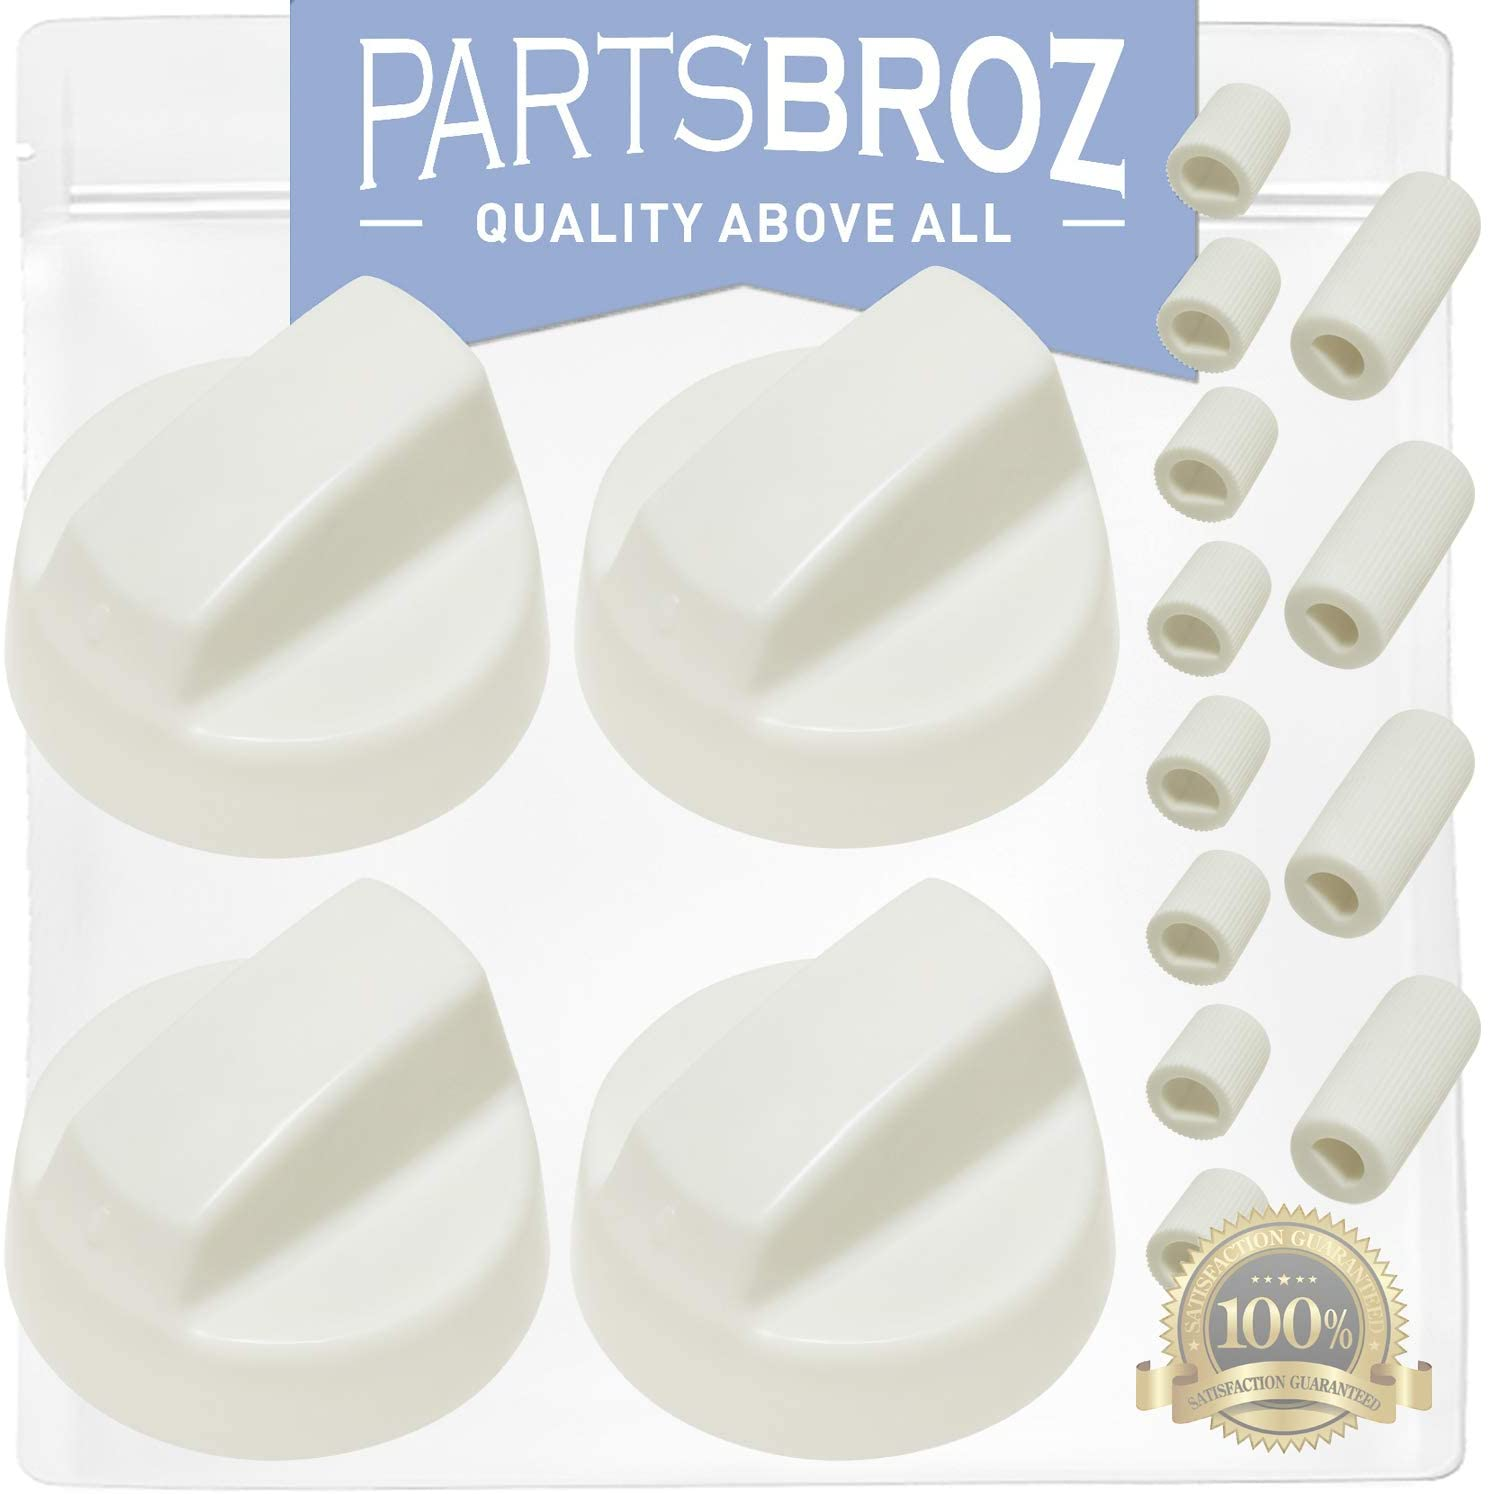 4-Pack of Universal White Stove/Oven Control Knobs with 12 Adapters by PartsBroz